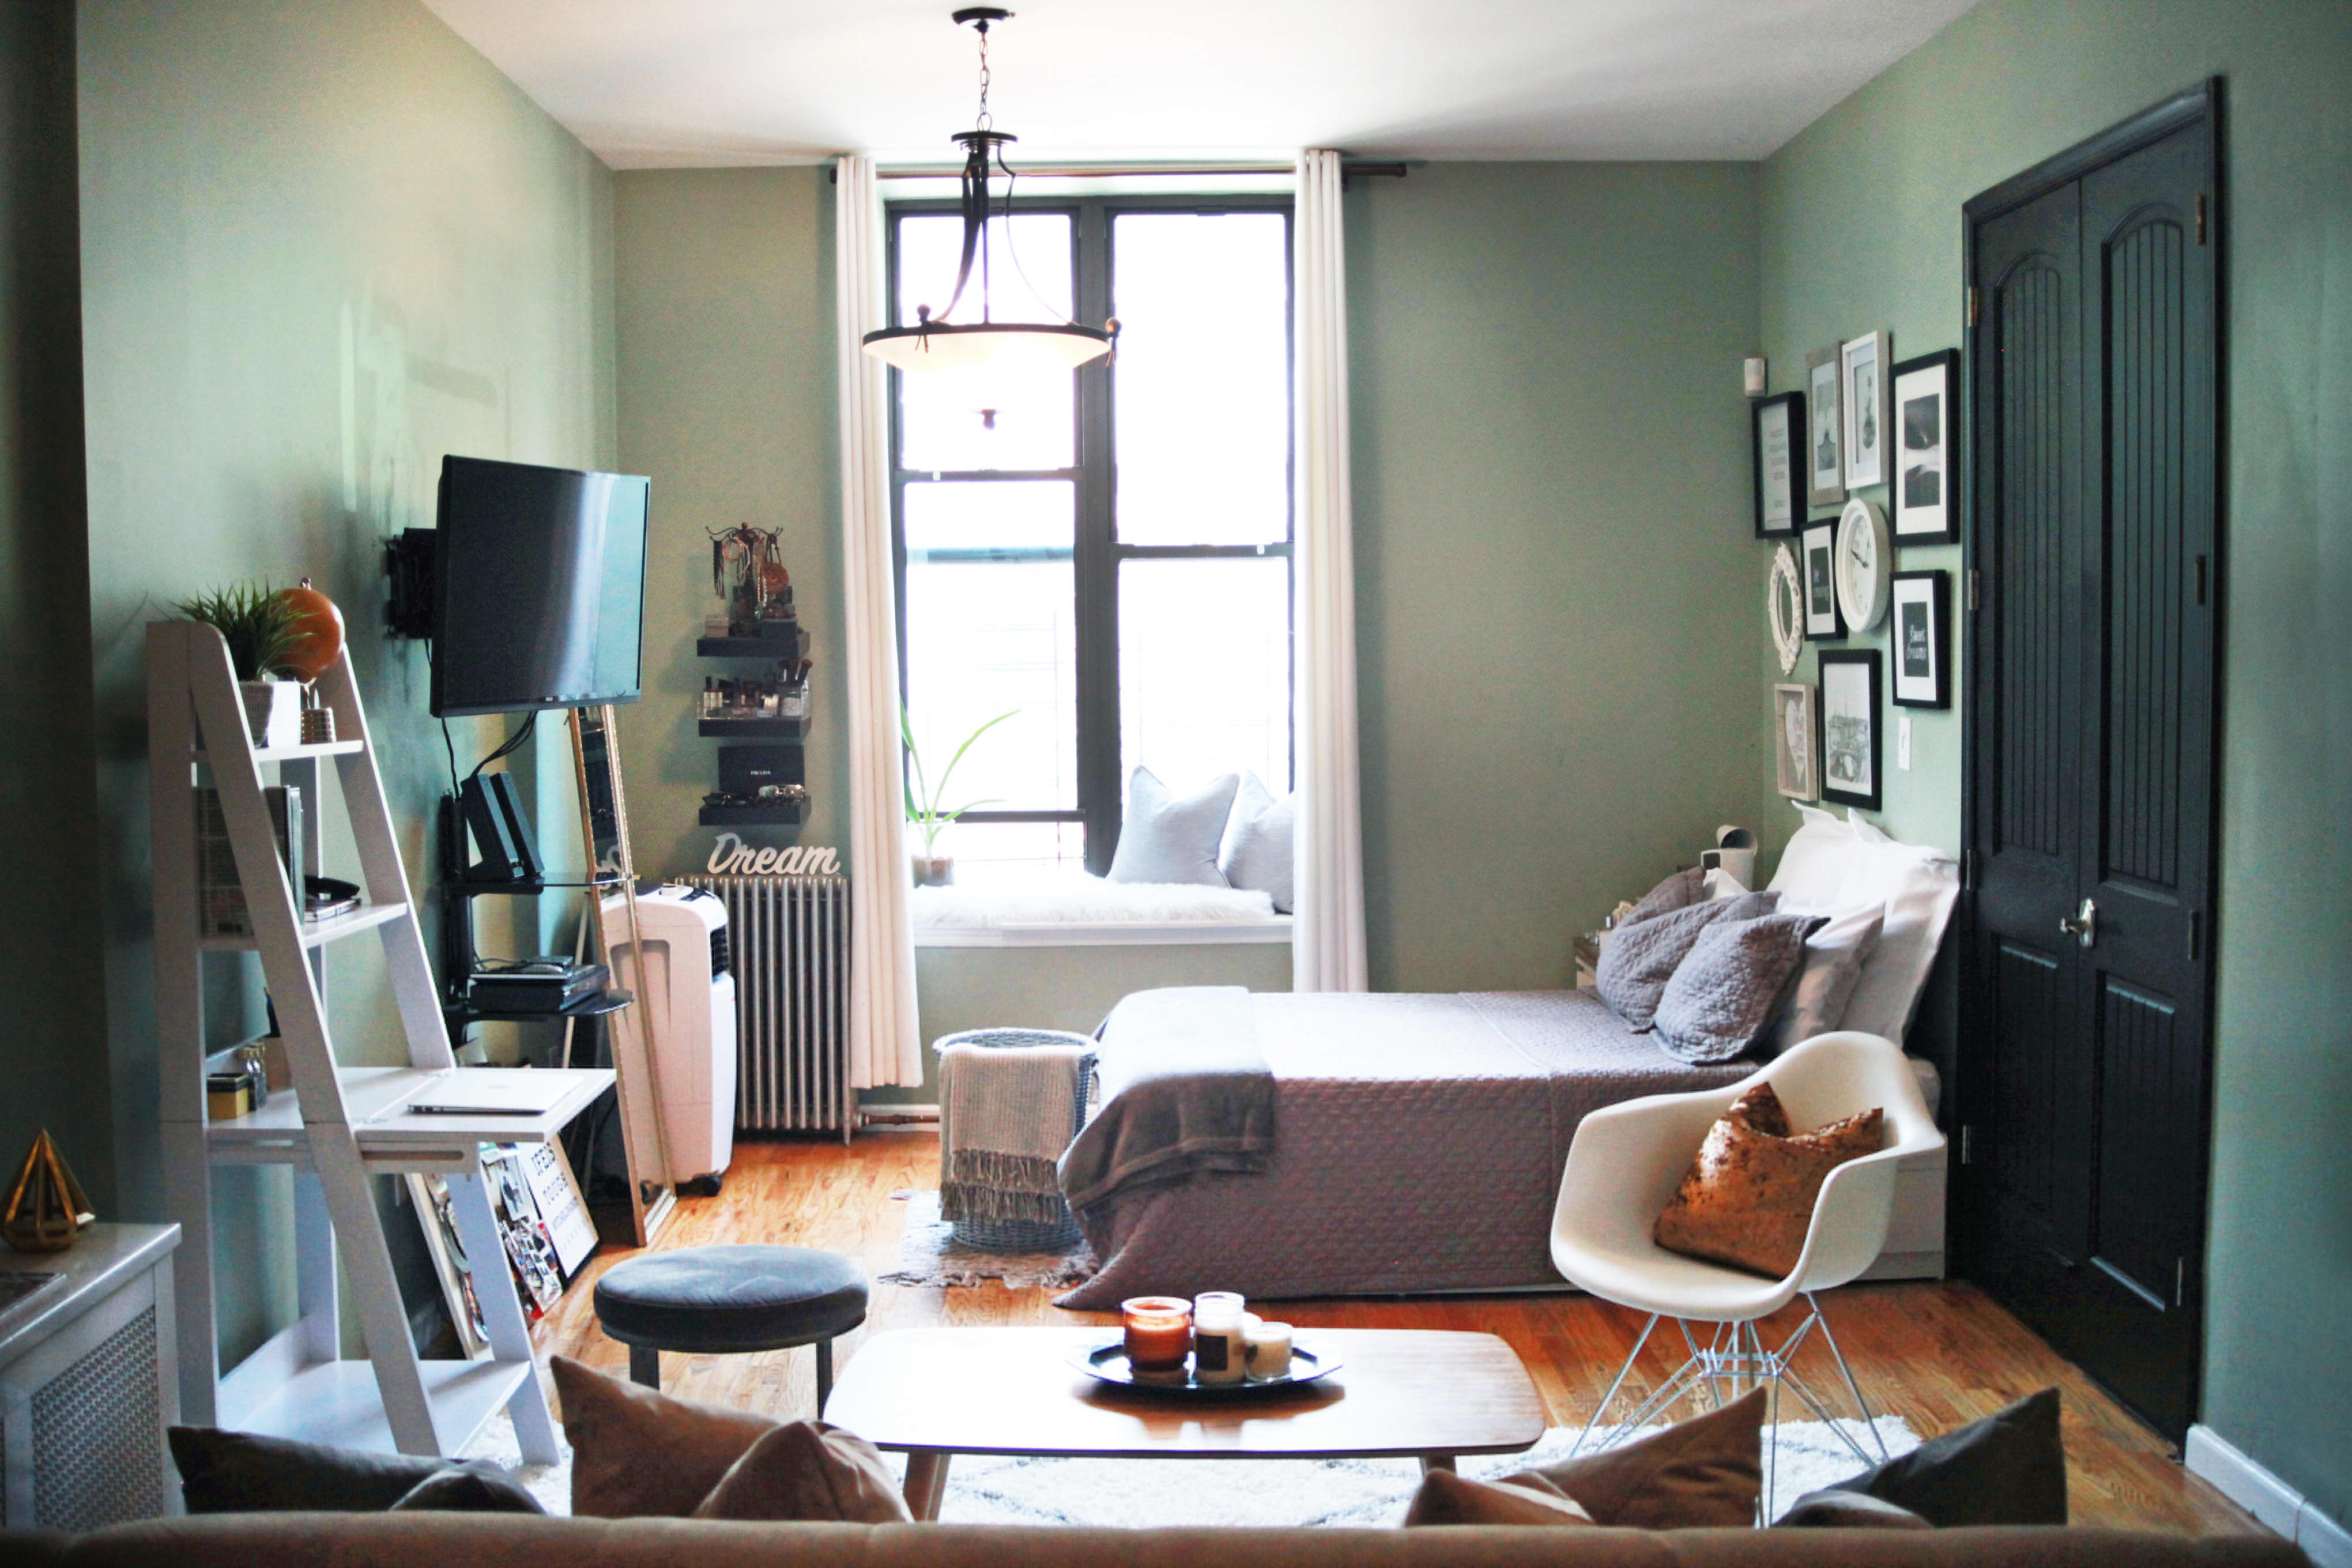 Small Space Living Ideas in a Tiny Brooklyn Studio | Apartment Therapy